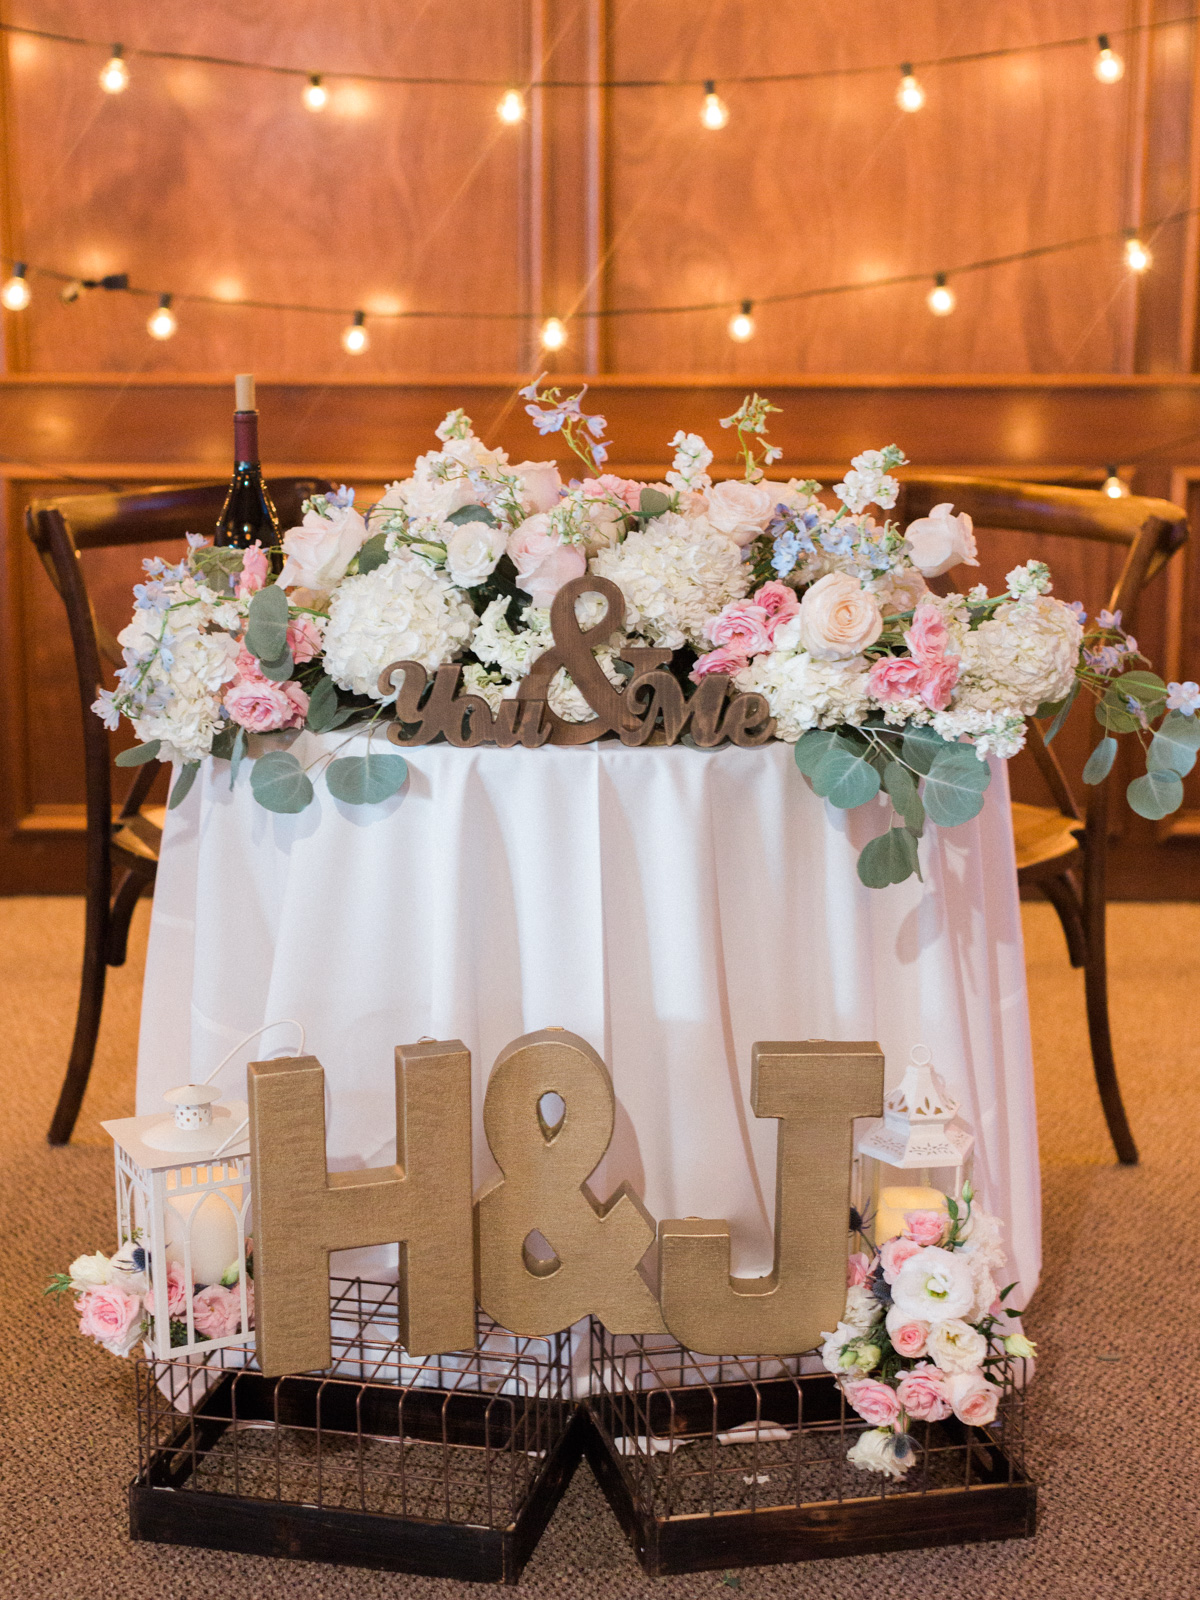 Gorgeous sweetheart table with florals by Soiree Design & Events  Harrison & Jocelyne's gorgeous Temecula wedding day at Wiens Family Cellars captured by Temecula wedding photographers Betsy & John